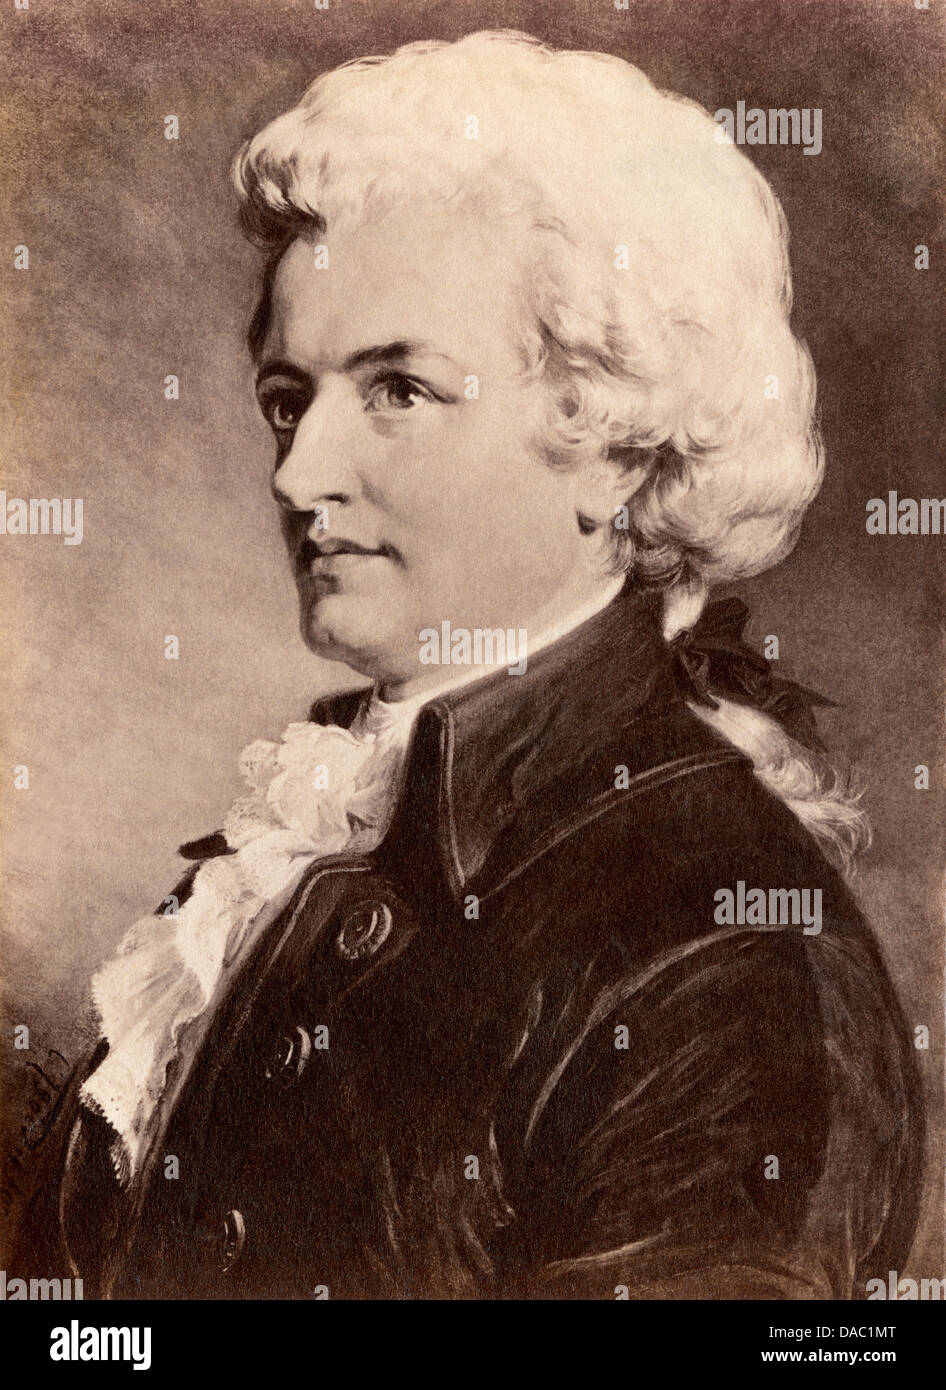 Portrait of Wolfgang Amadeus Mozart. Photograph of a painting - Stock Image